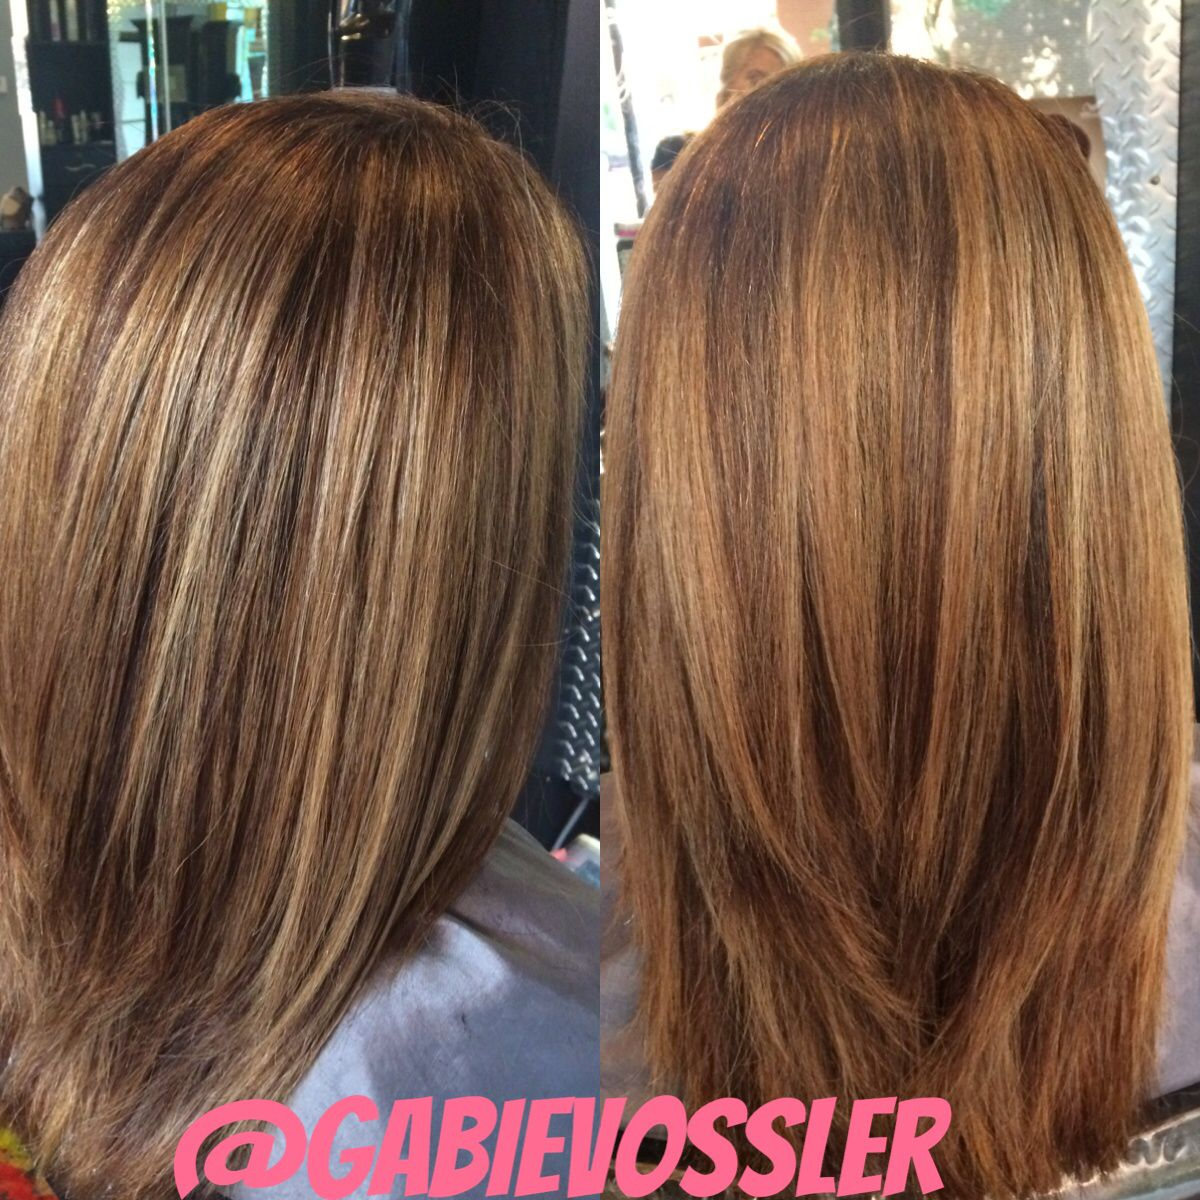 #balayage Hair By Gabie Vossler At Glass Door Salon And Spa